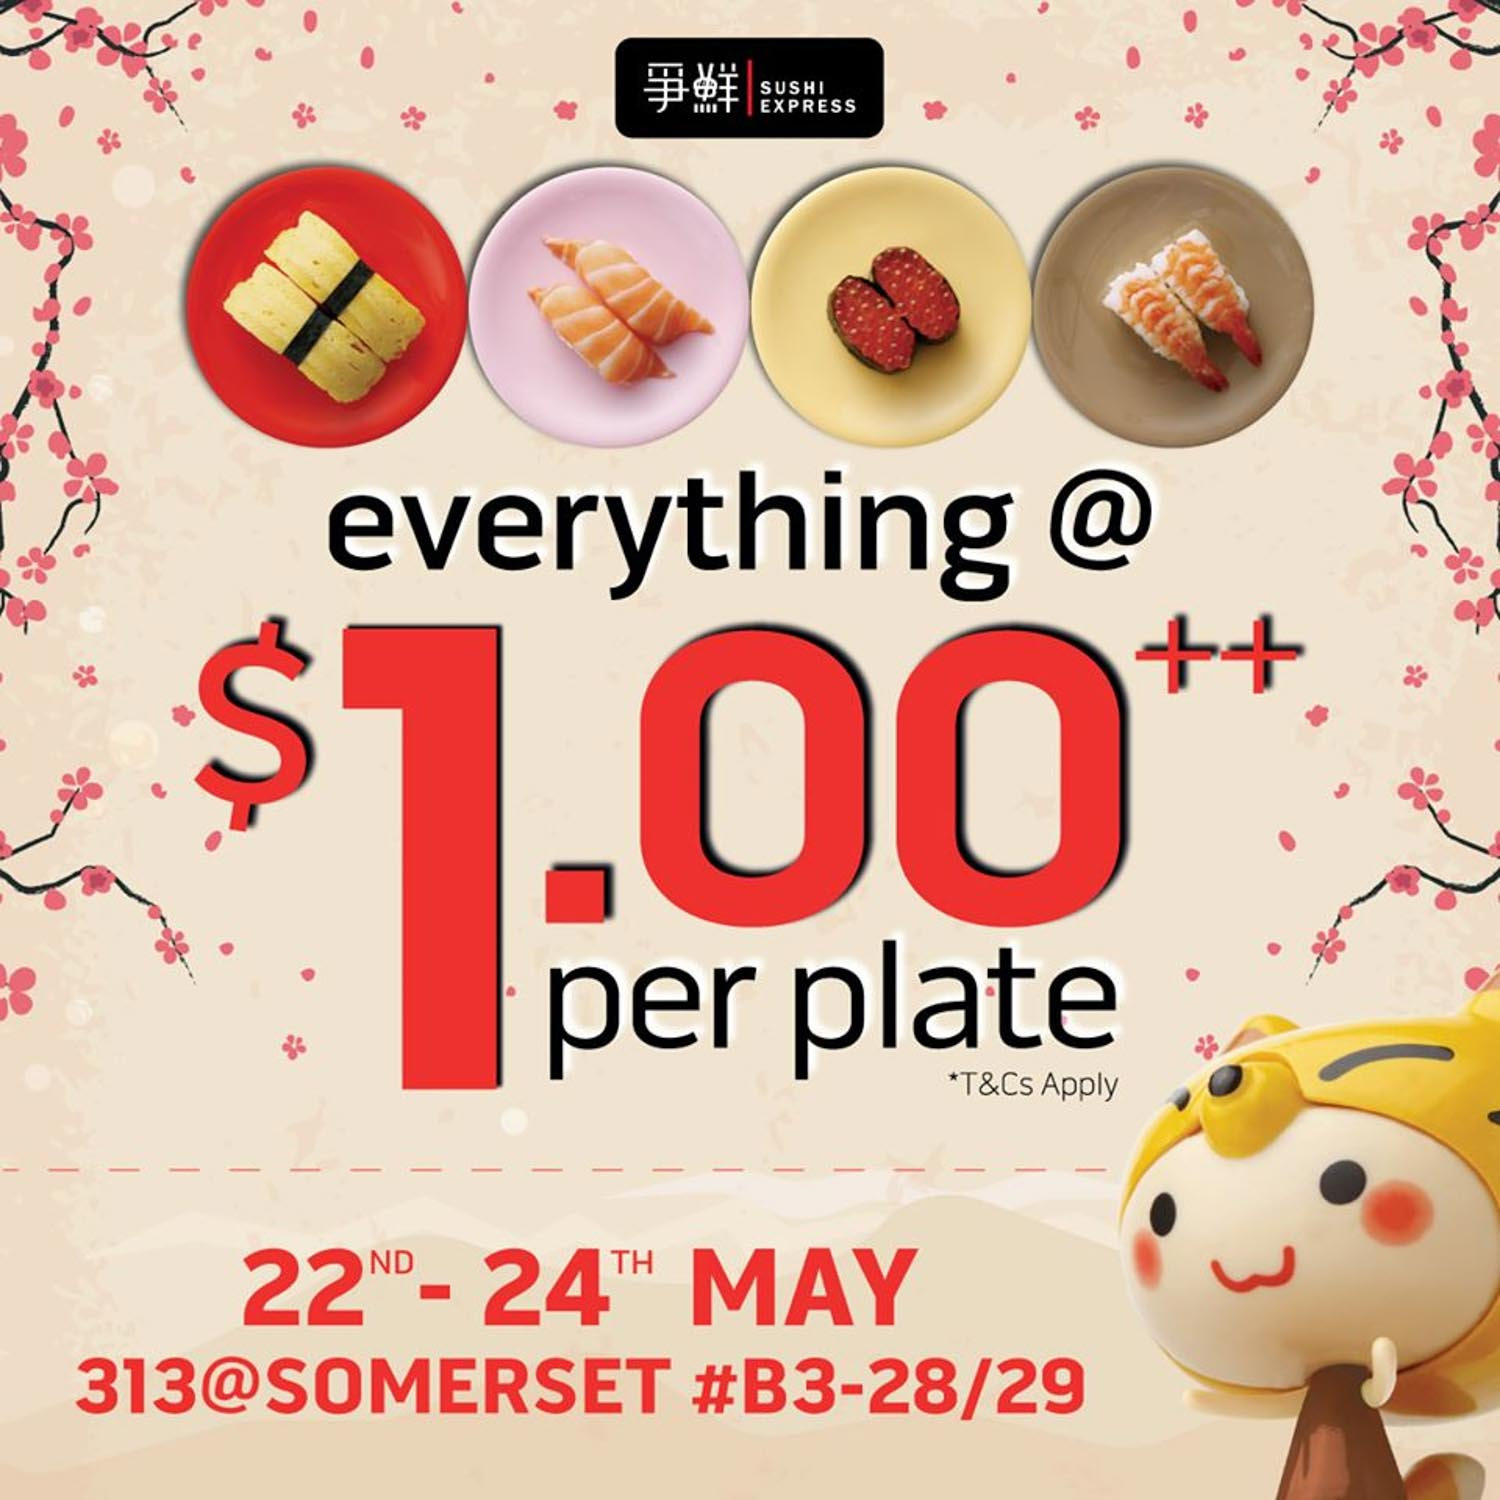 Sushi Express Somerset - Promotion Introduction